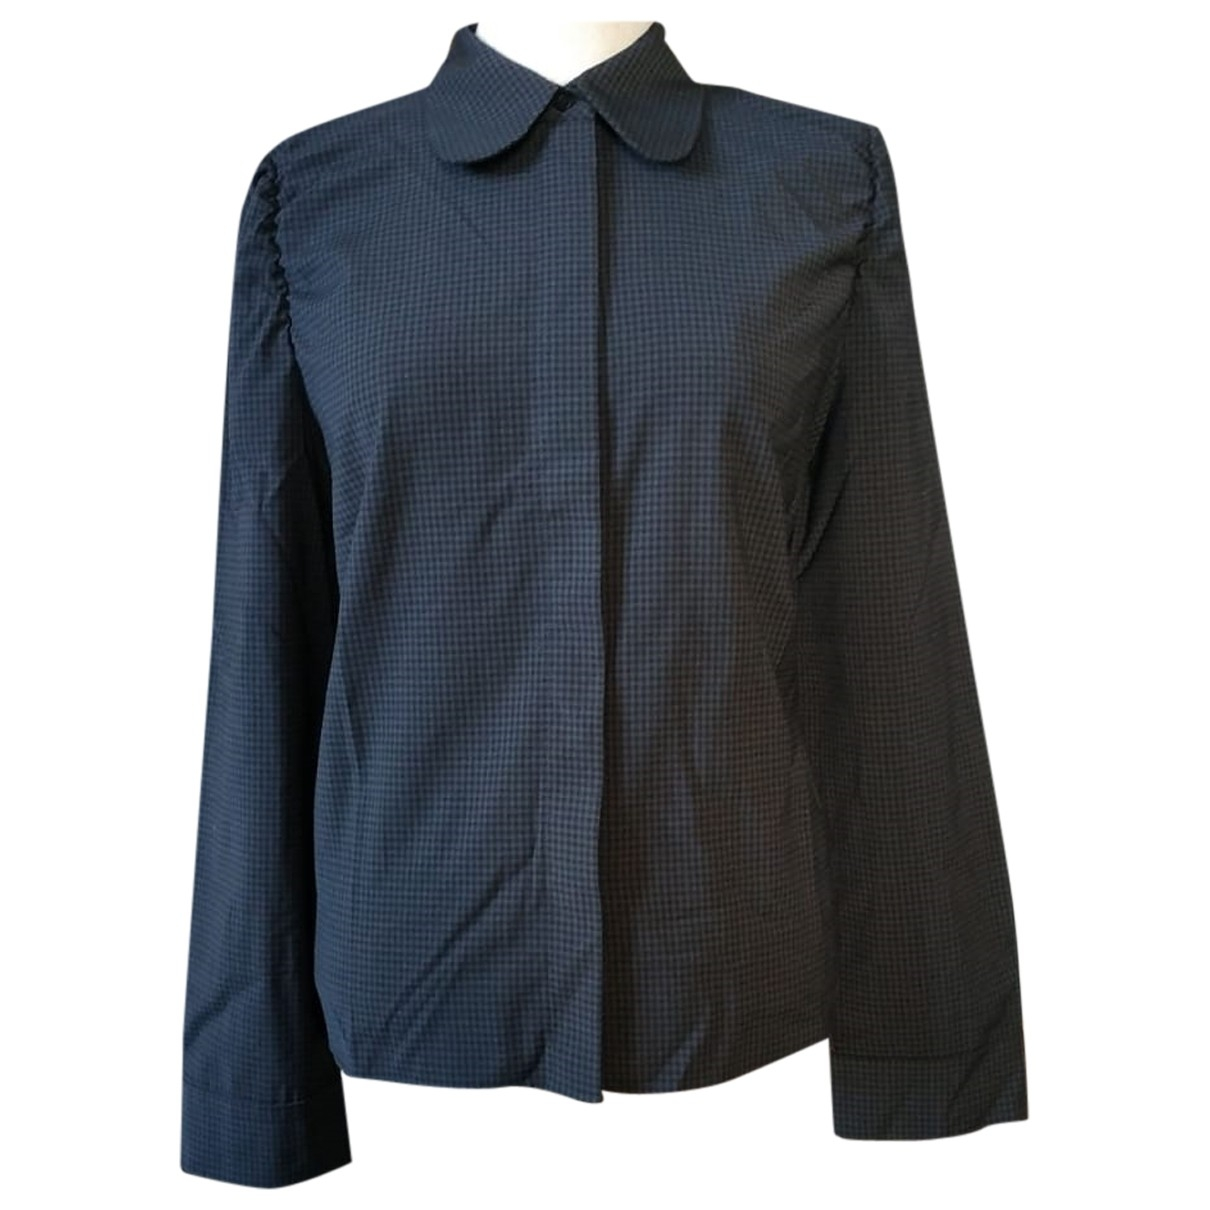 Cos \N Anthracite Wool  top for Women S International